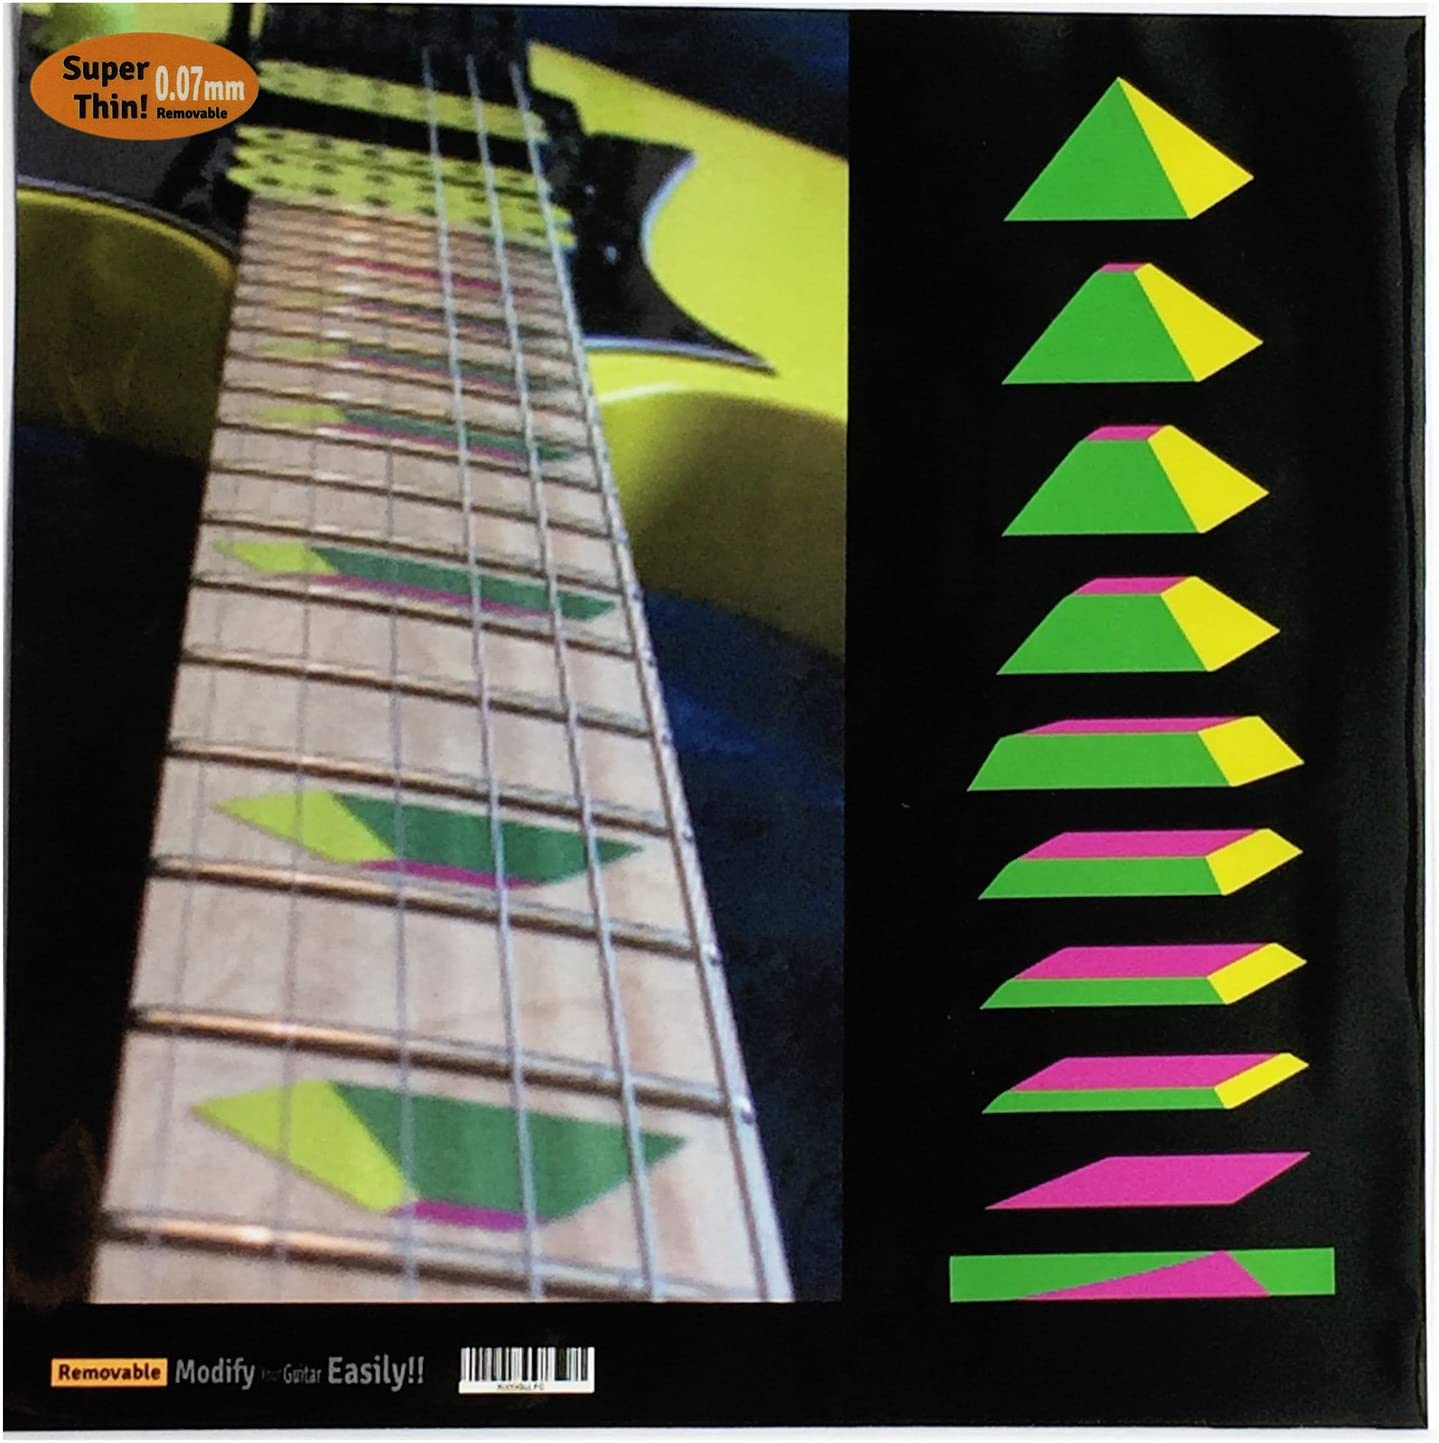 Fretboard Markers Inlay Sticker Decals for Guitar /& Bass Ricky Triangle